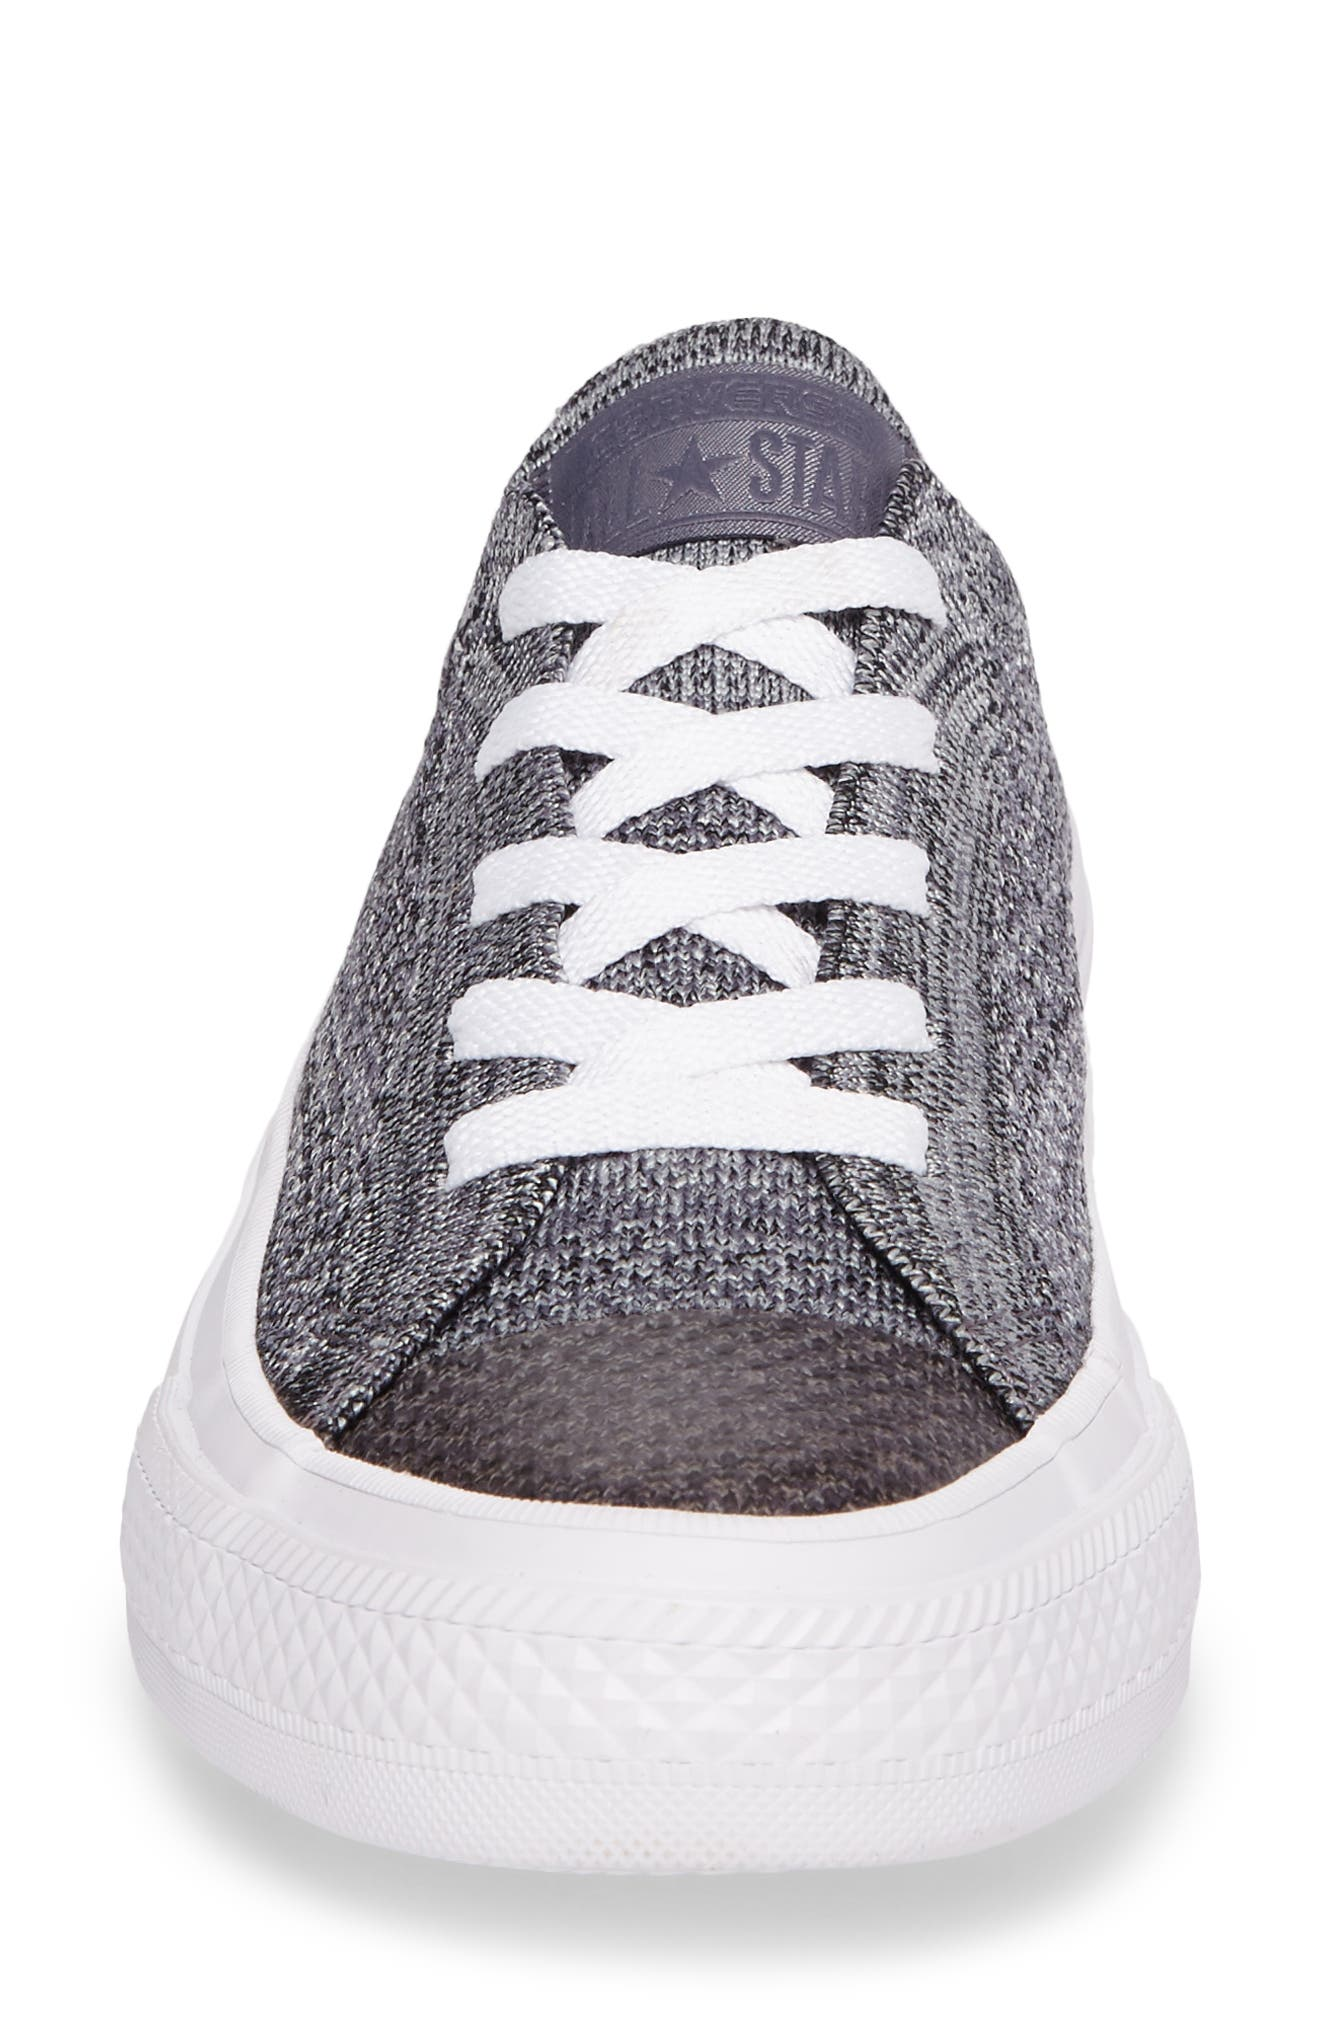 All Star<sup>®</sup> Flyknit Low Sneaker,                             Alternate thumbnail 4, color,                             027